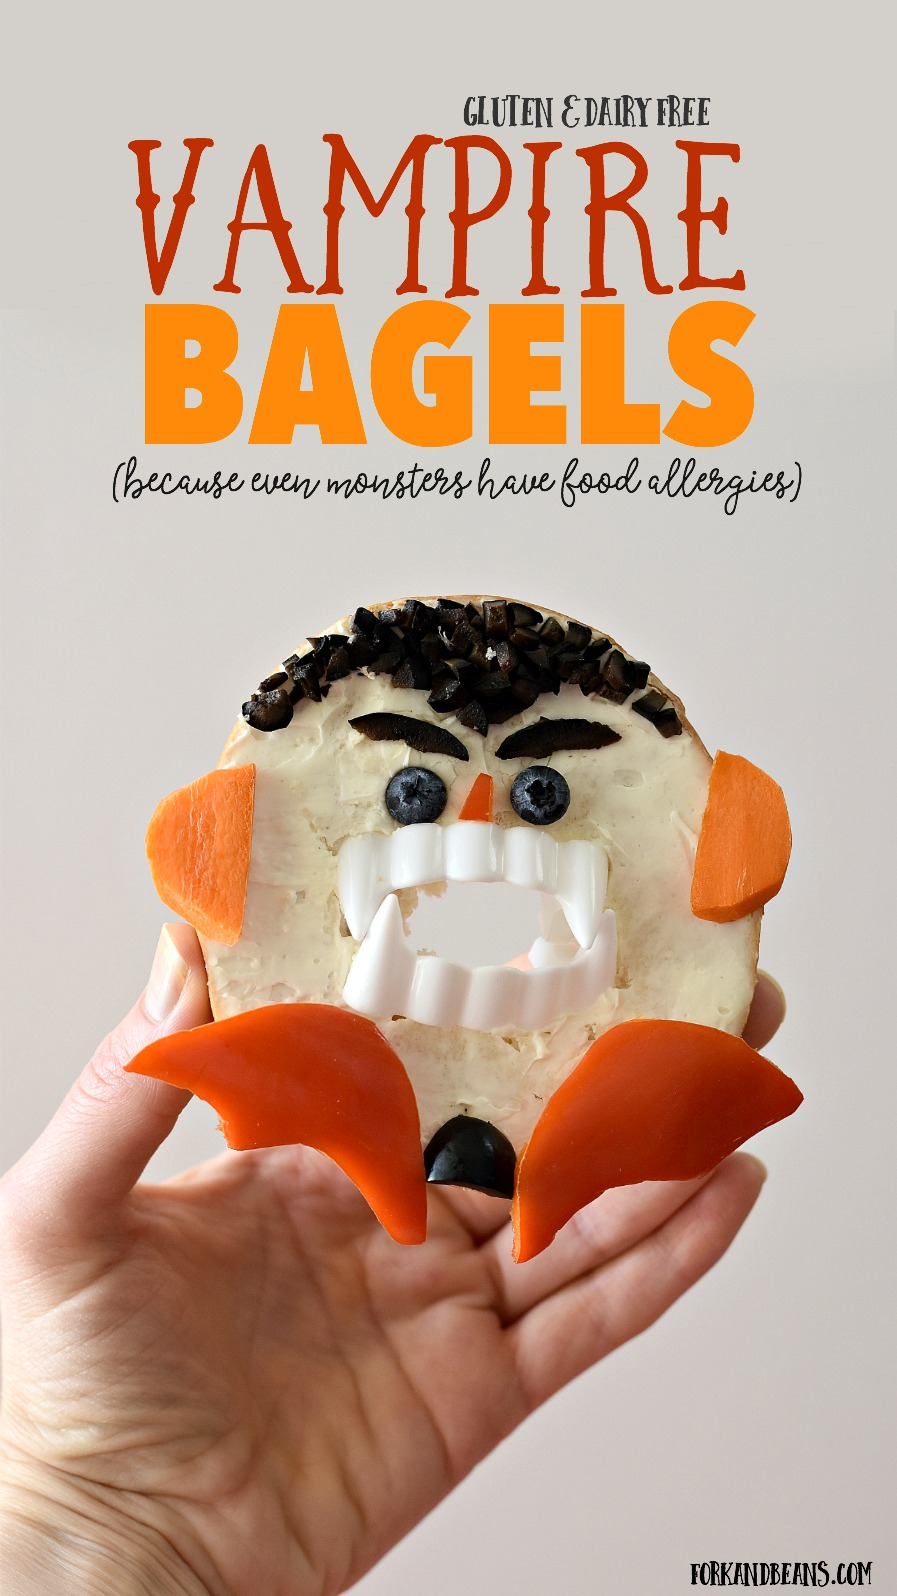 Turn an ordinary breakfast food into allergen-friendly Vampire Bagels this Halloween. Your kids will beg for a BITE over and over again!